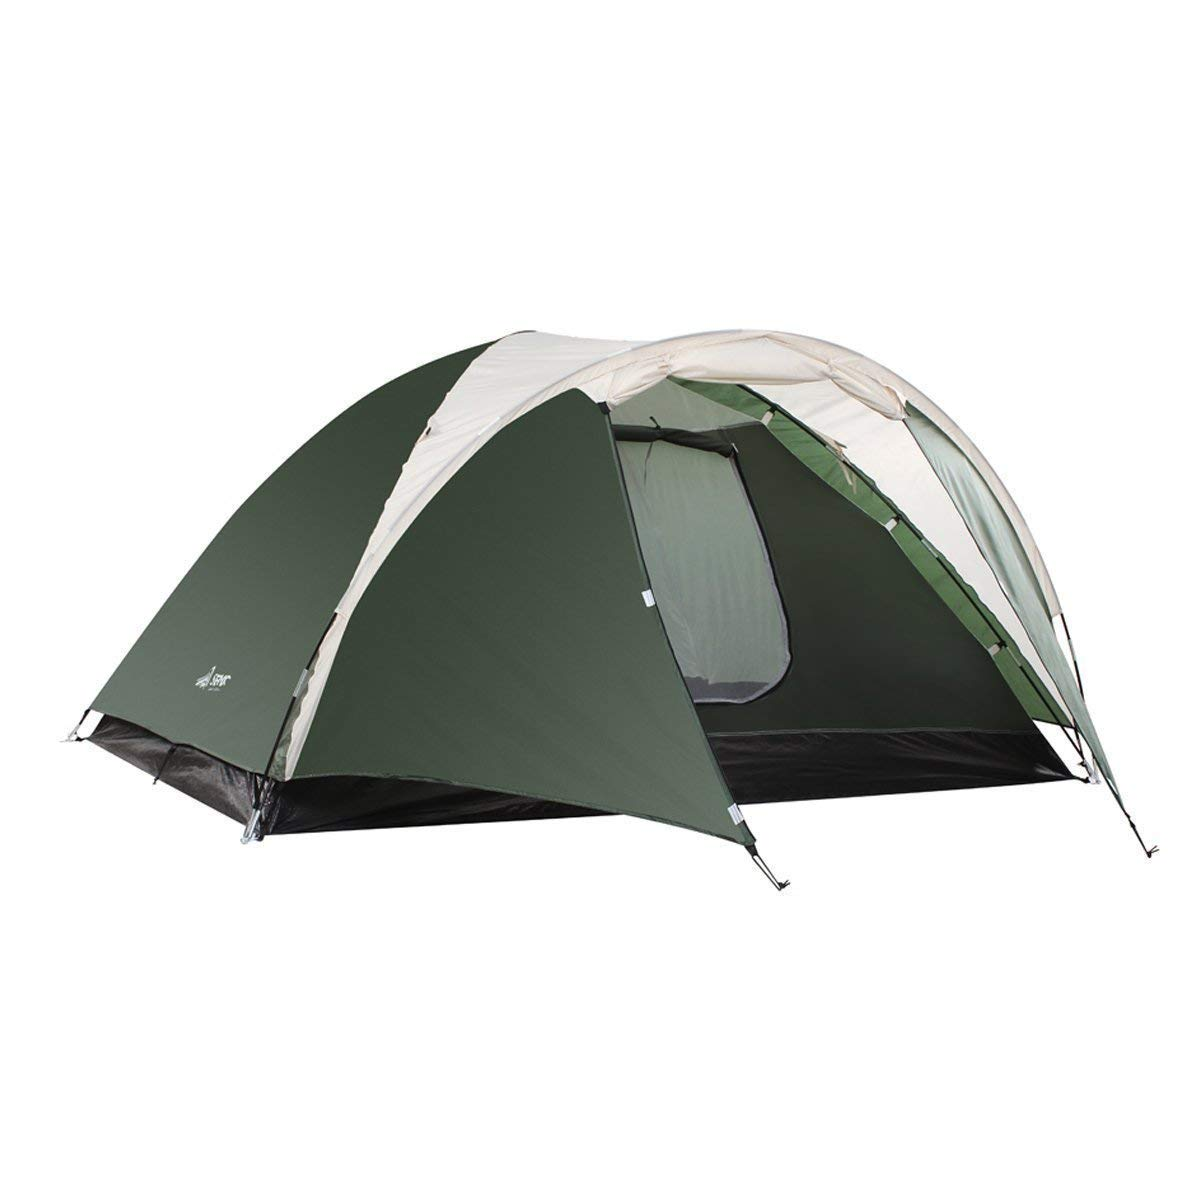 [SEMOO] [SEMOO Camping Tent 3-4 Person 4-Season Double Layer Lightweight Traveling Tent with Carry Bag] (並行輸入品) One Size army green B07JCMVSR8